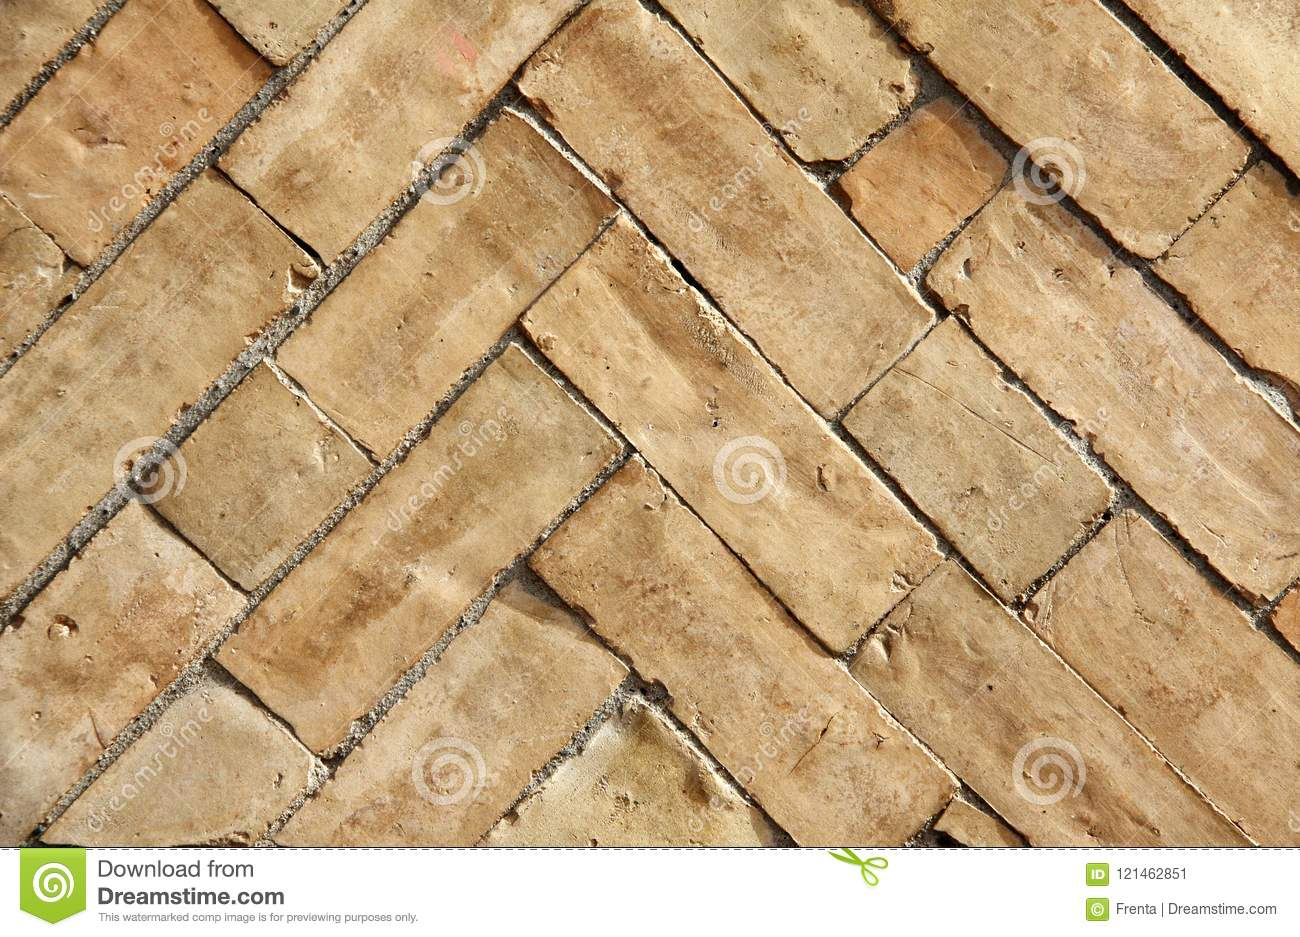 Texture of old brick wall stock image. Image of wall - 121462851